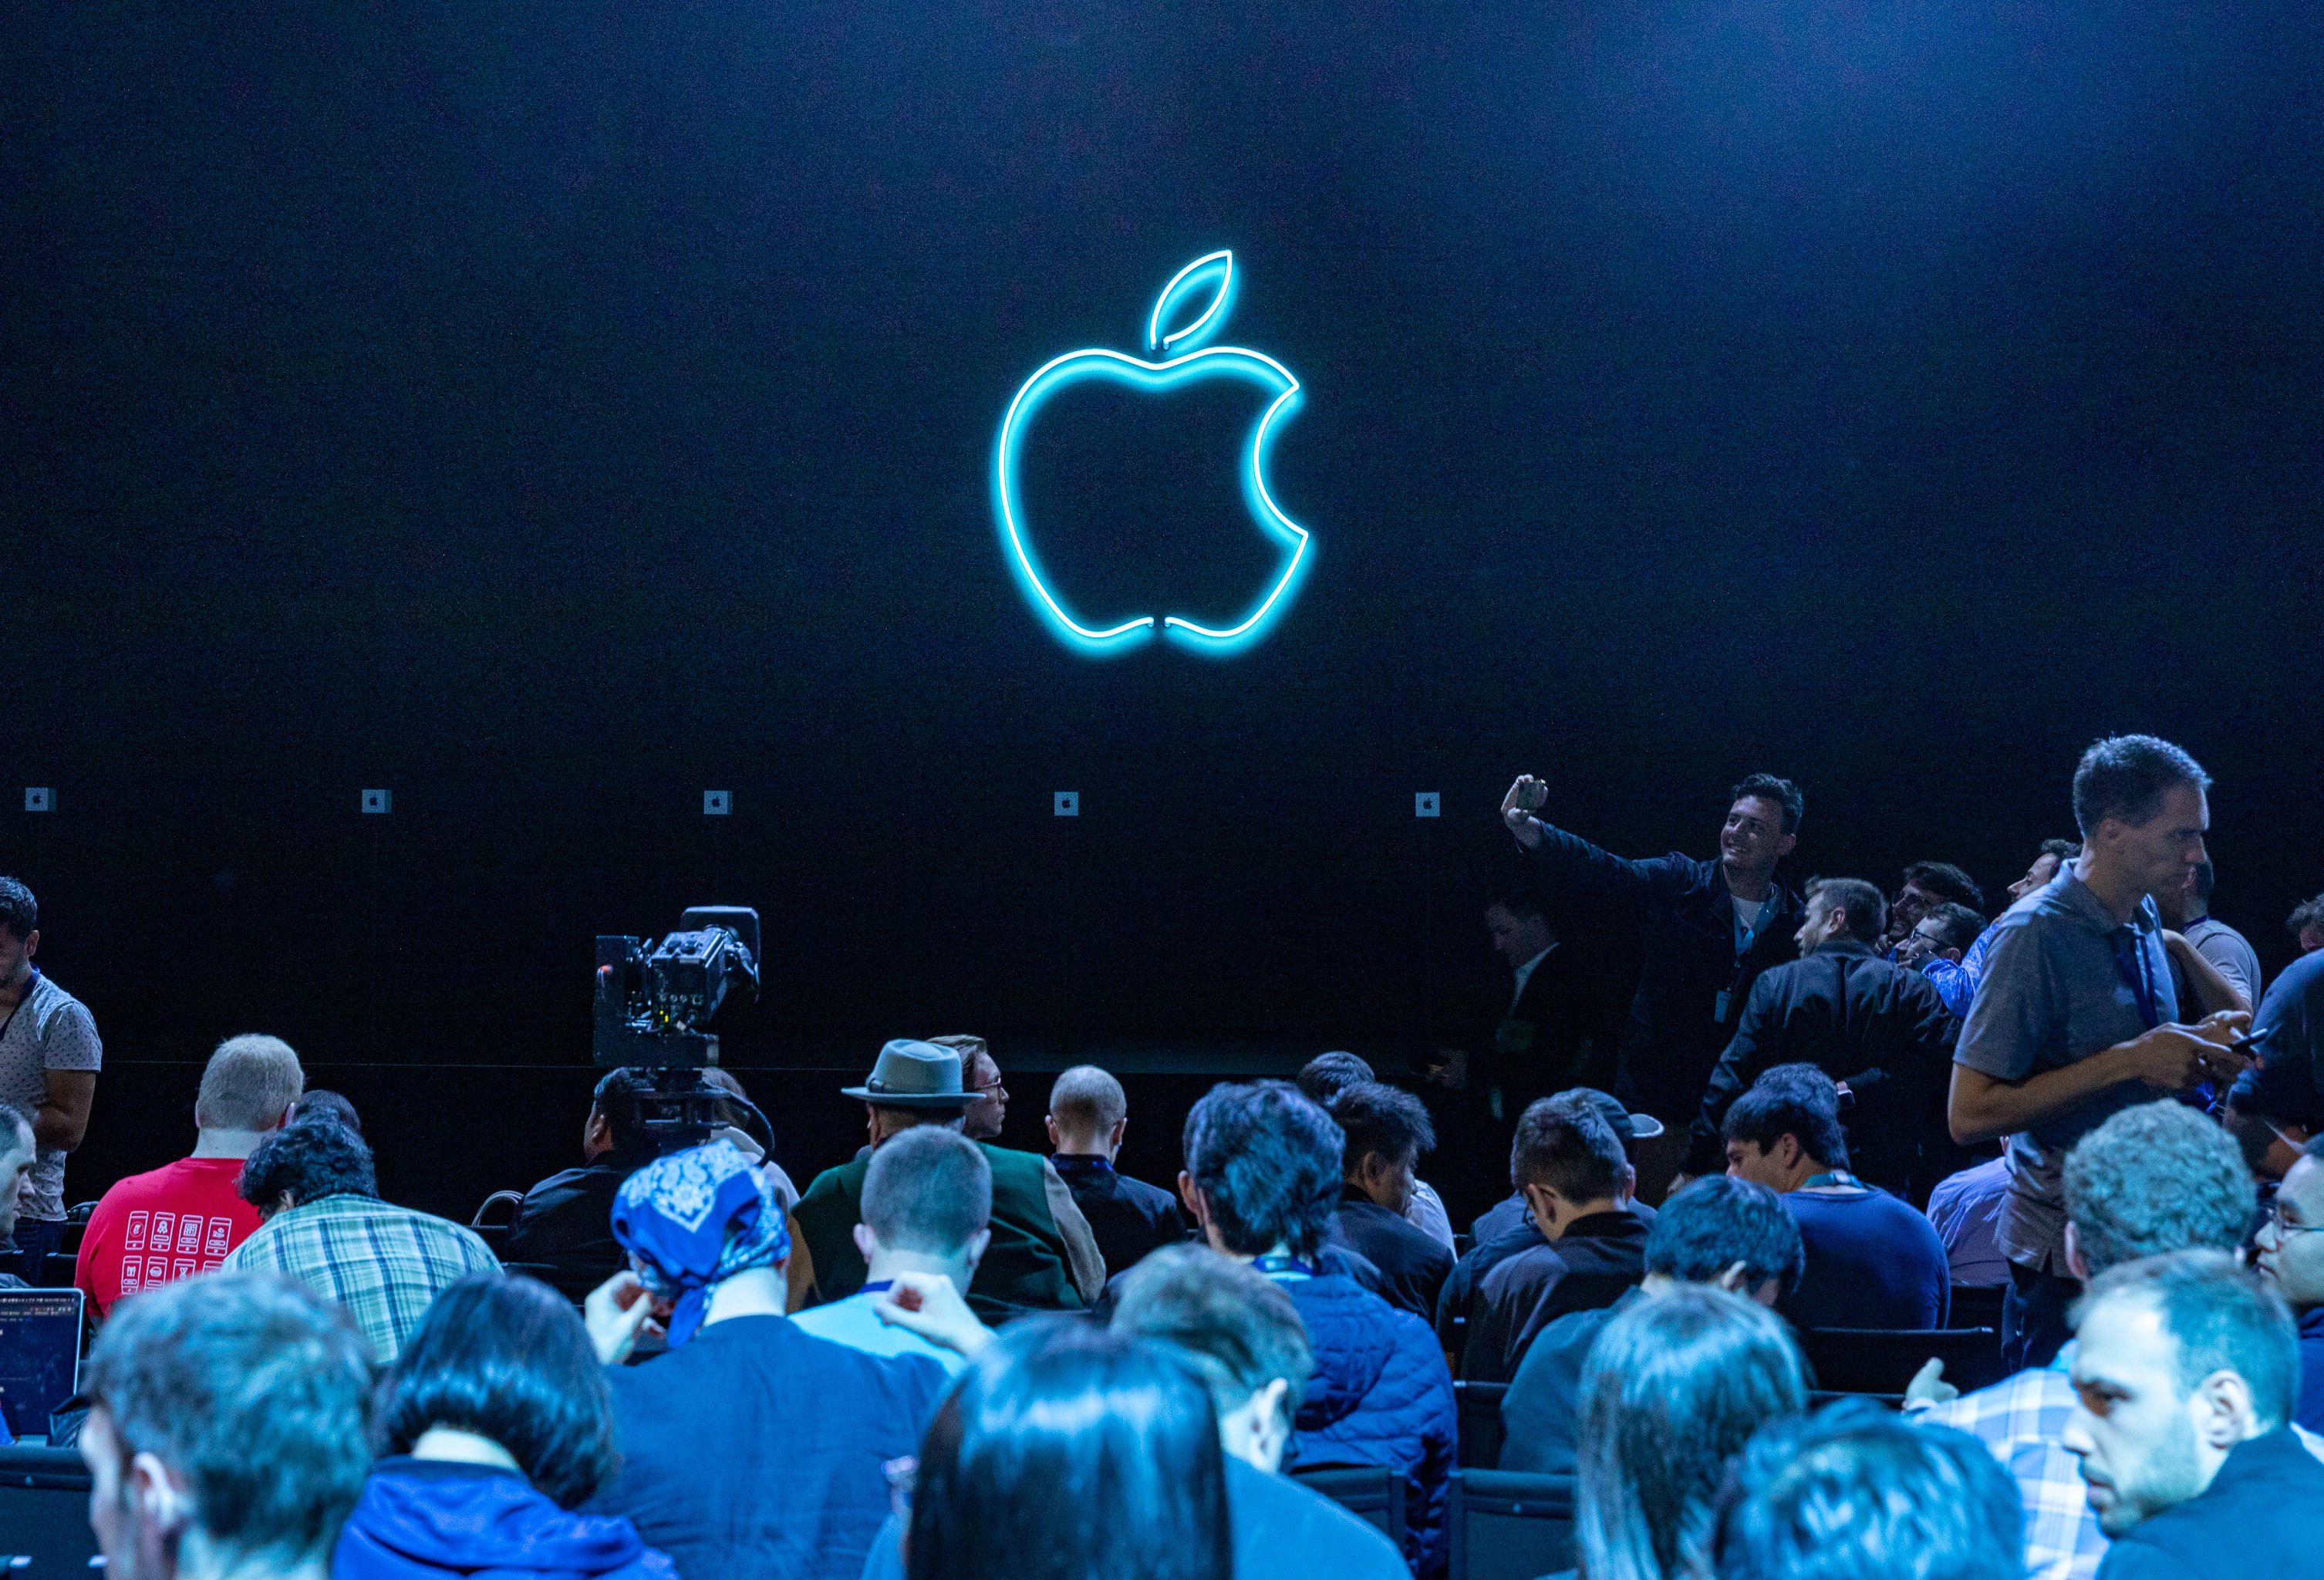 Apple started moving toward language that's more inclusive and less racially charged at its WWDC conference in June.